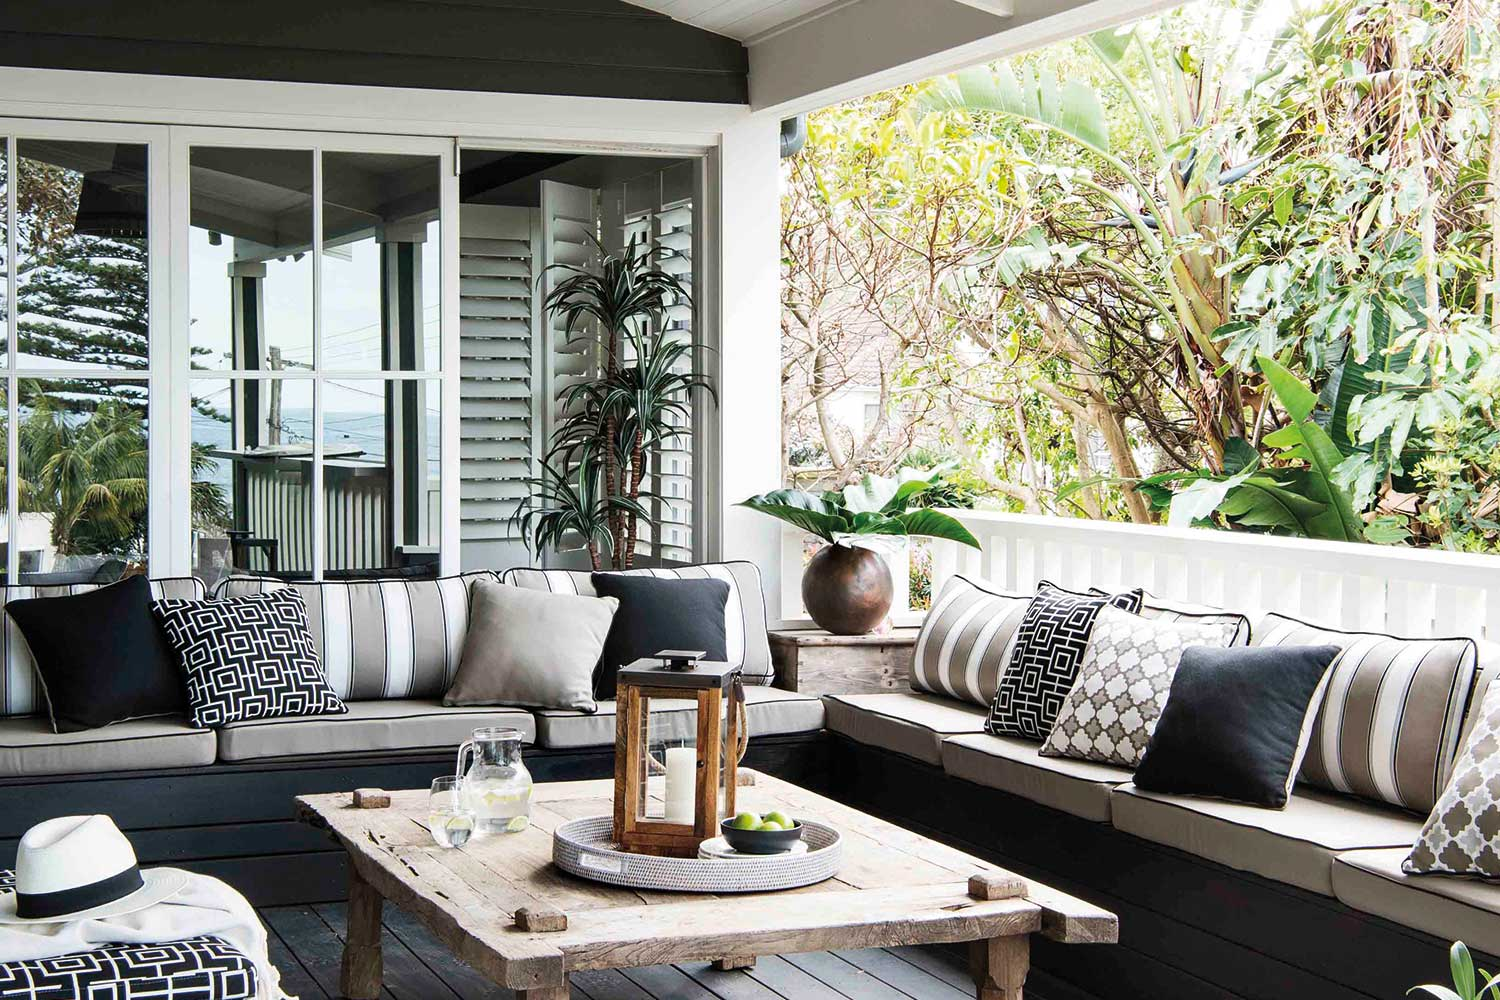 5 things you need to know about having a fire pit | Home ...